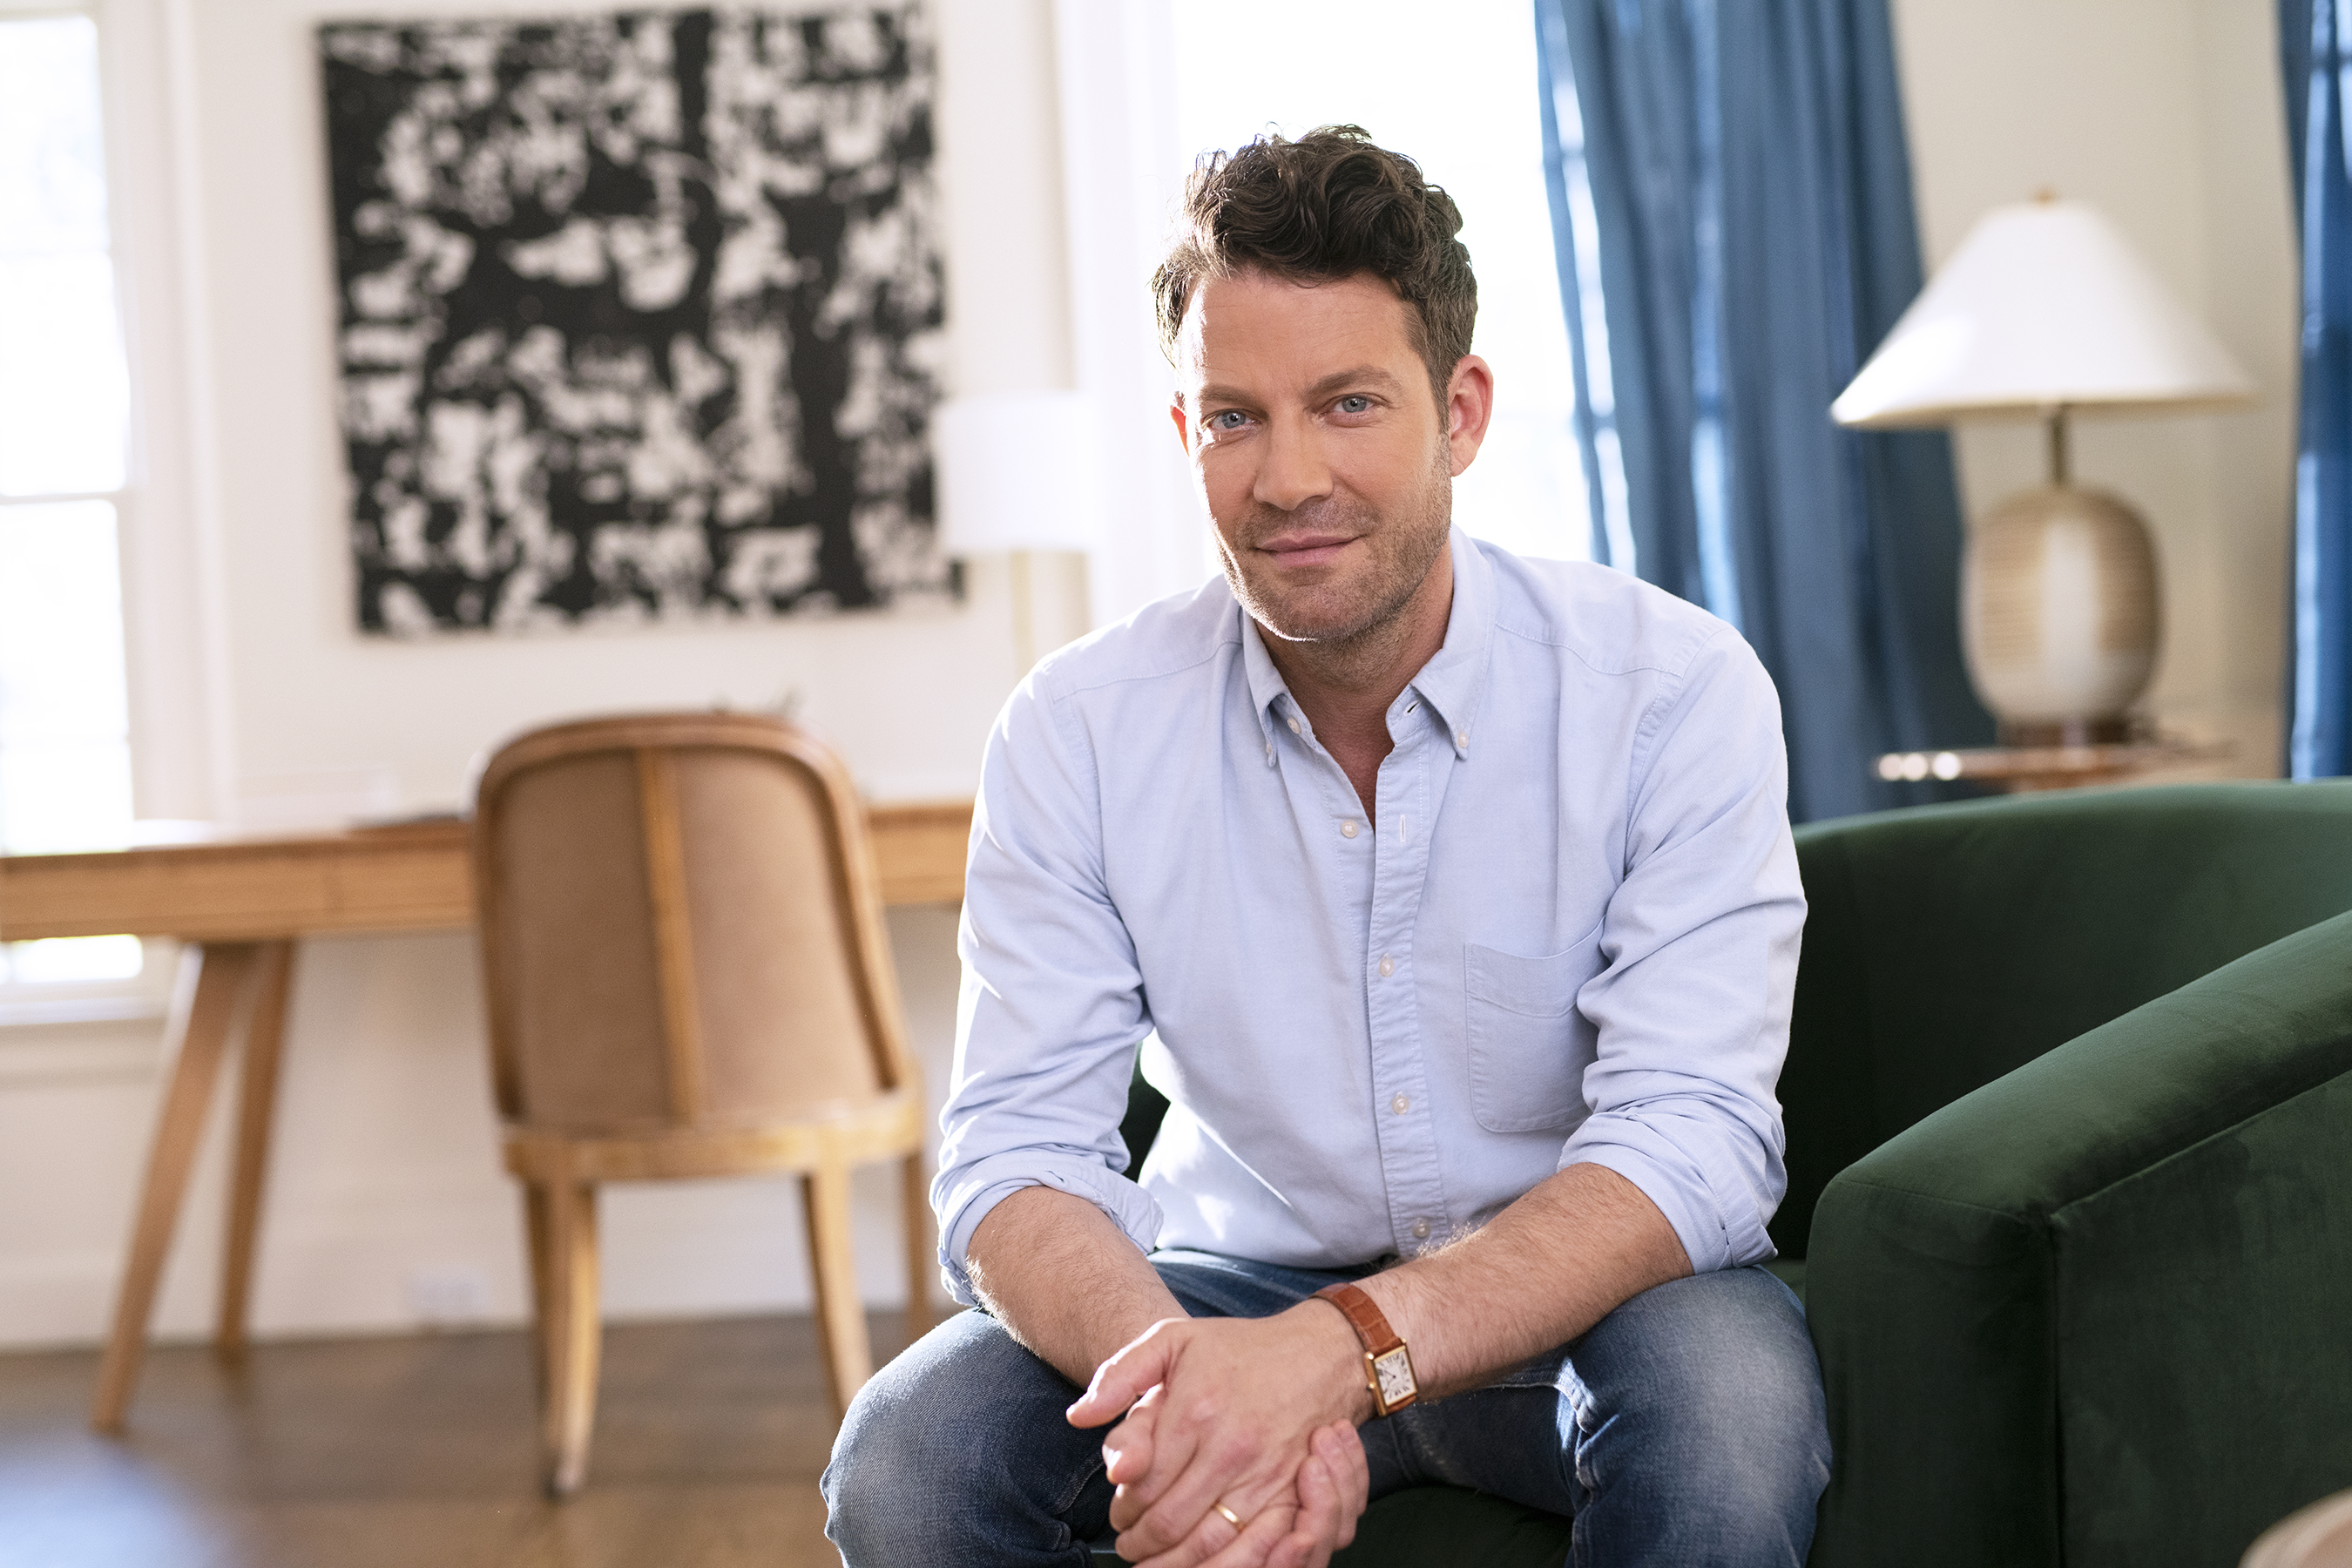 Nate Berkus's Newest Project Focuses On Adapting Spaces For Vision Loss